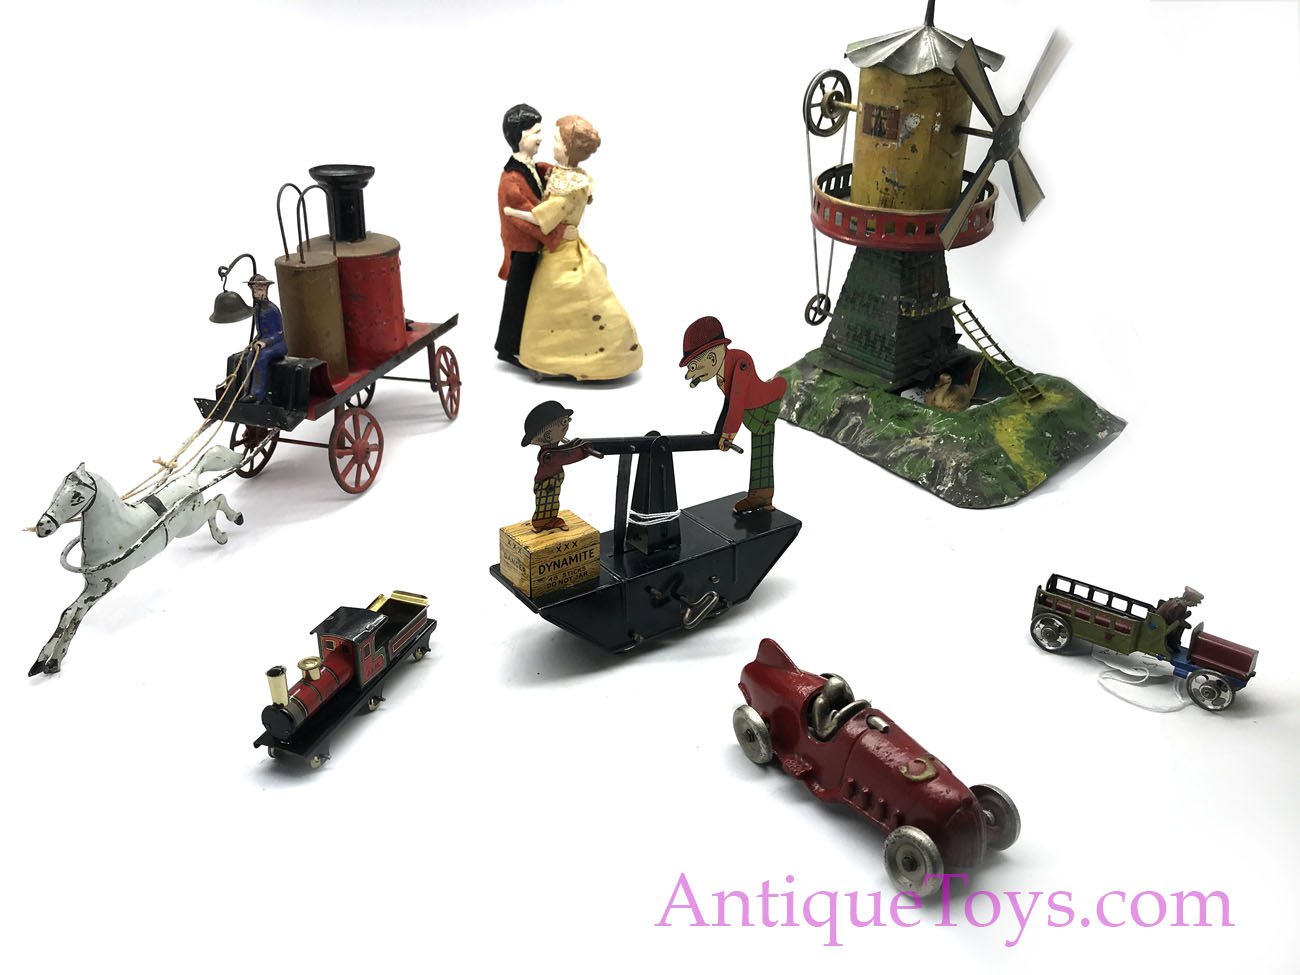 Toy Antique Toys For Old And Vintage